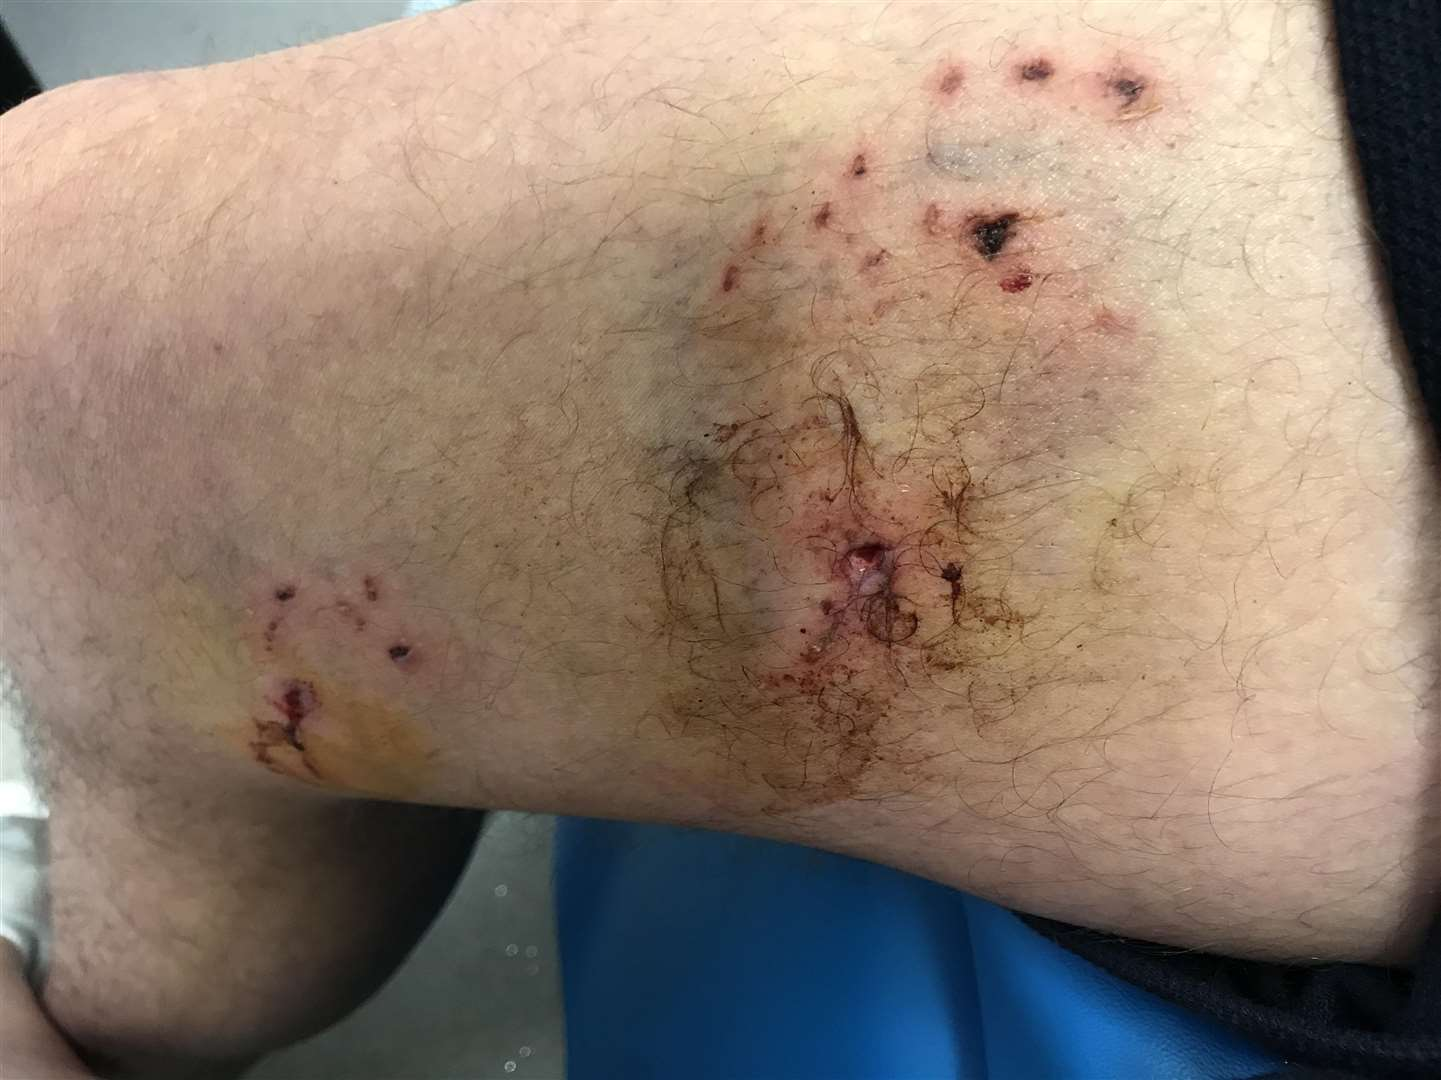 David Turner was bitten on the hand and leg during a vicious attack in Sevenoaks